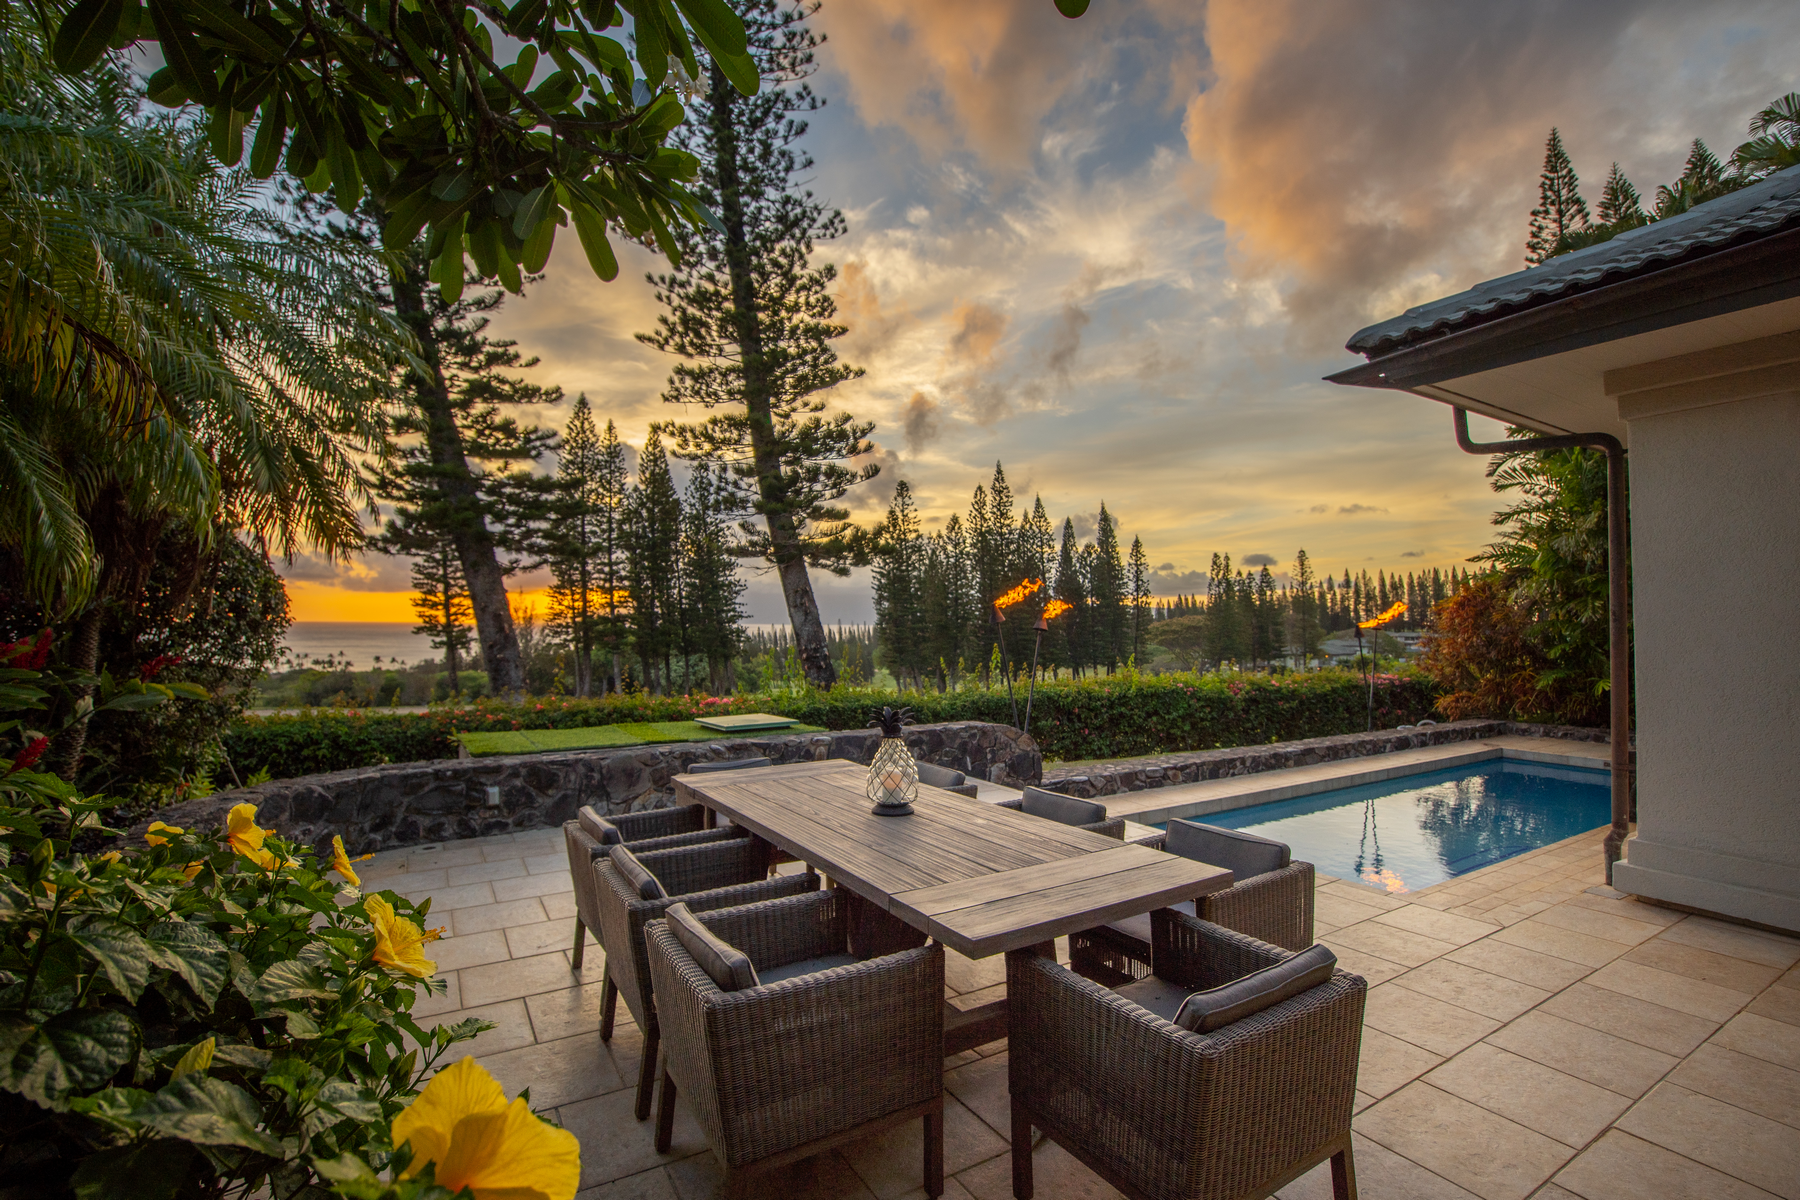 708 Fairway, home for sale in Pineapple Hill Kapalua